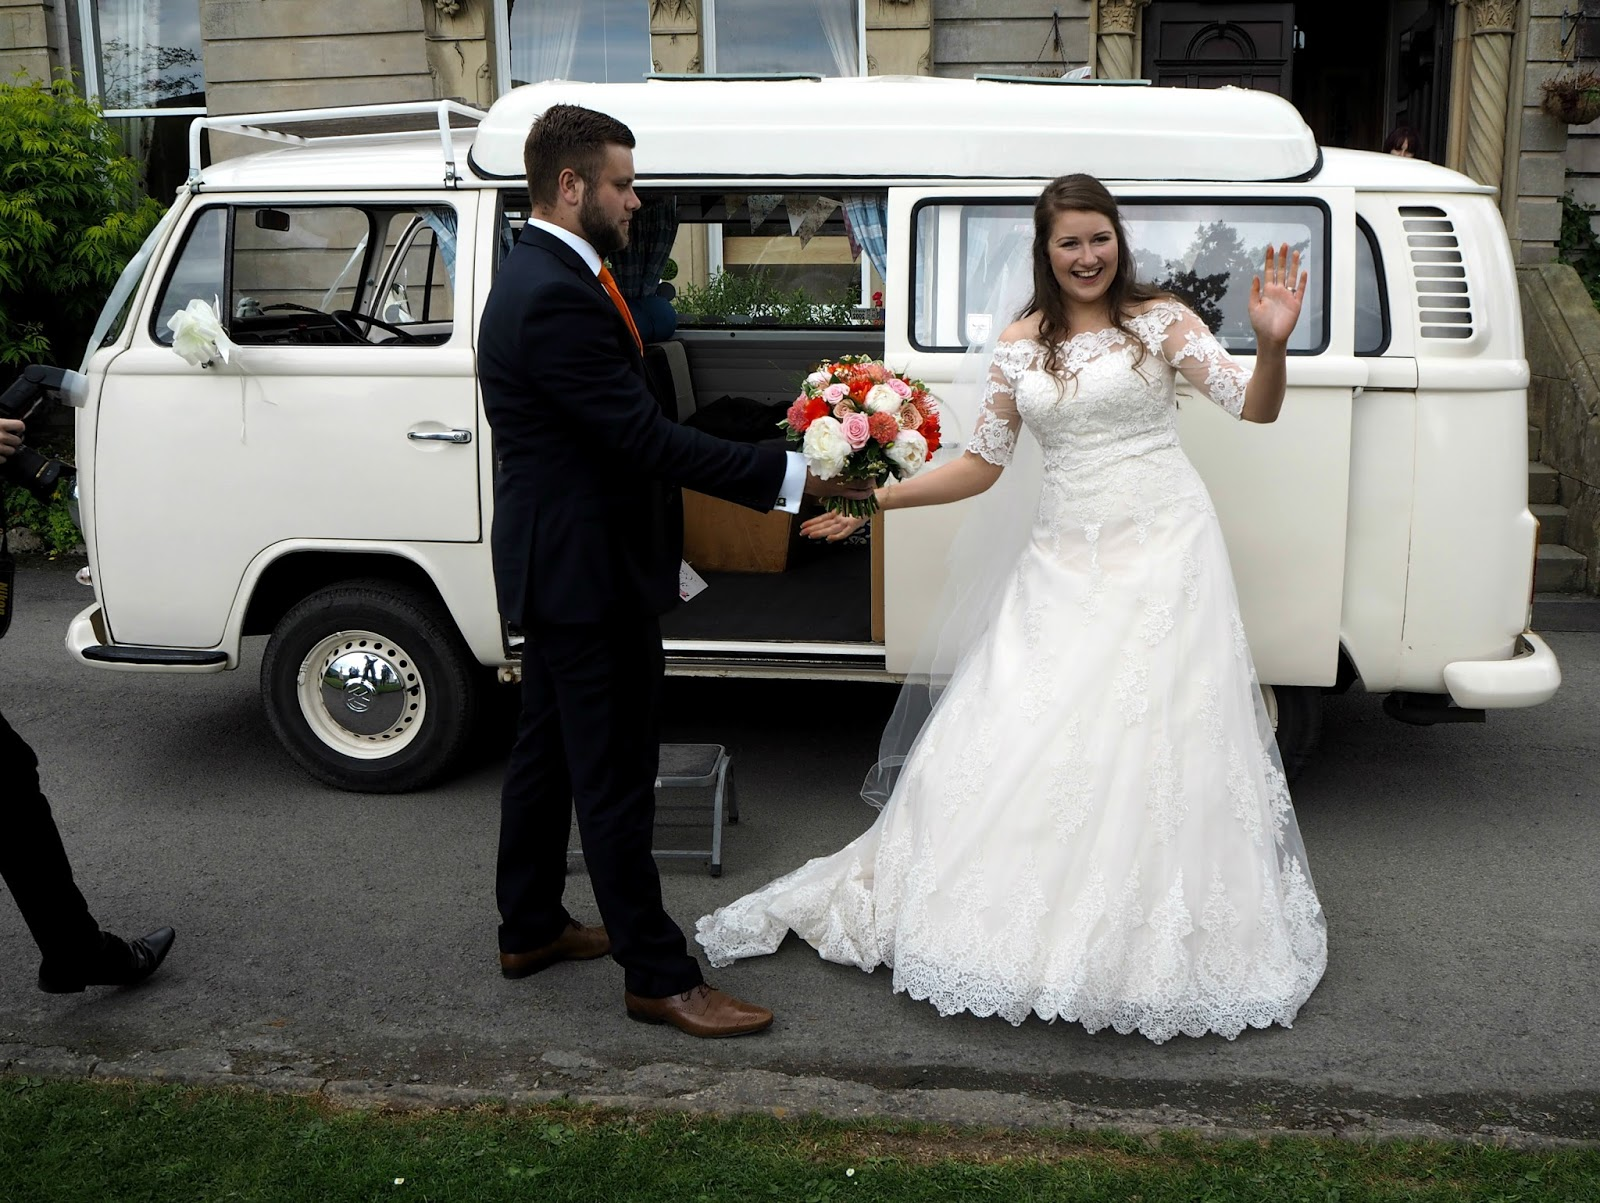 Wedding couple stepping out of campervan